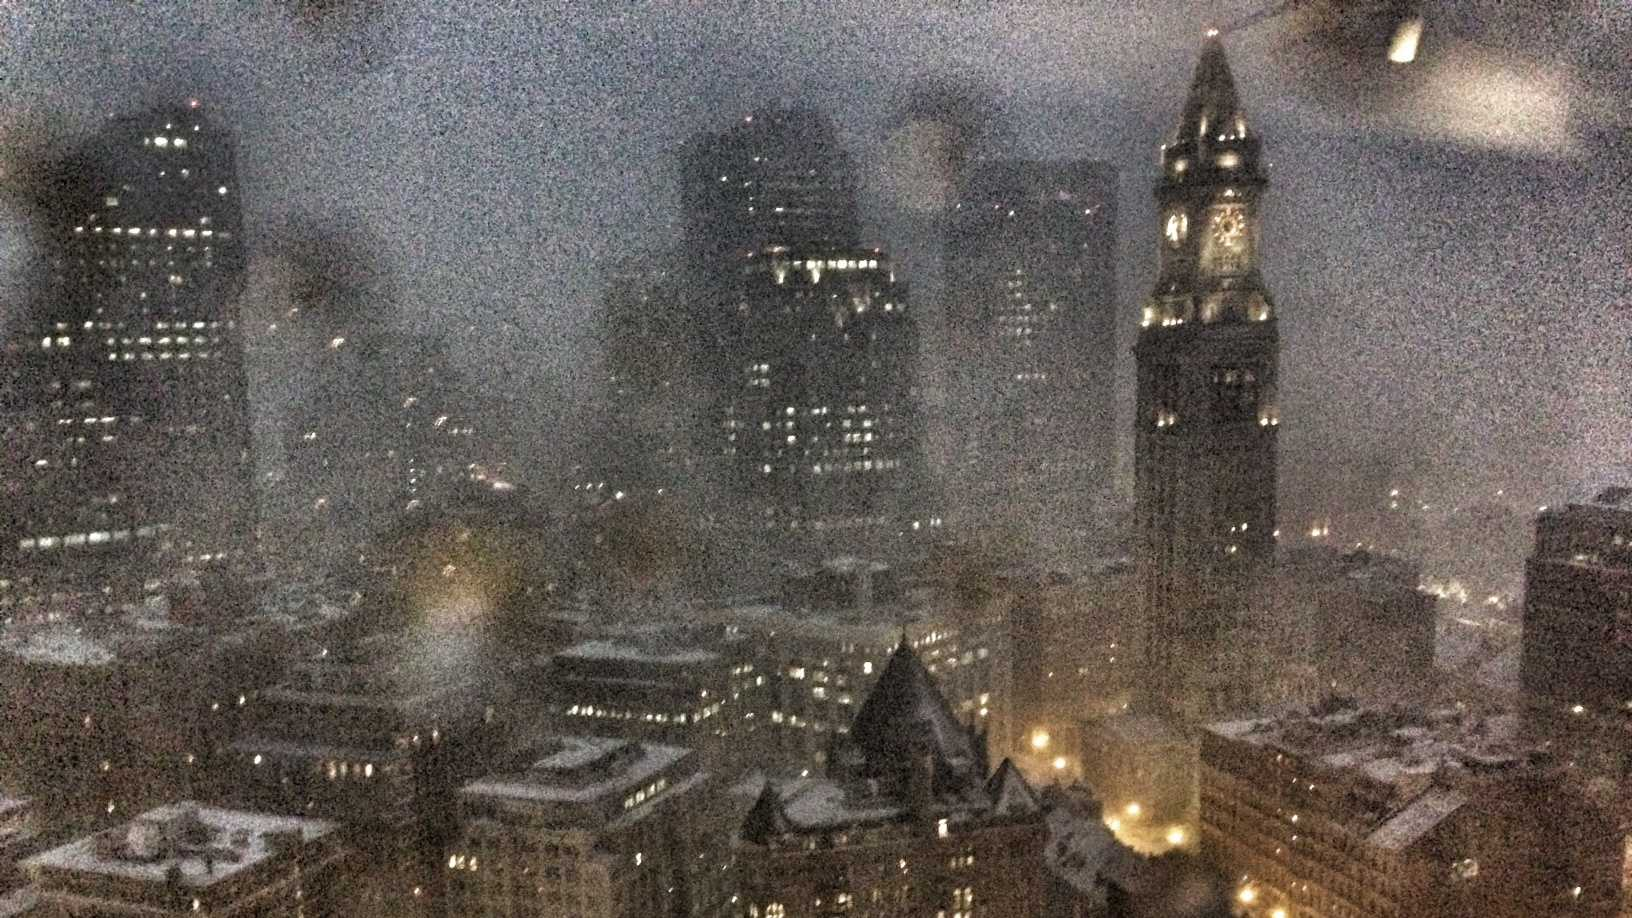 The Boston skyline during the blizzard.